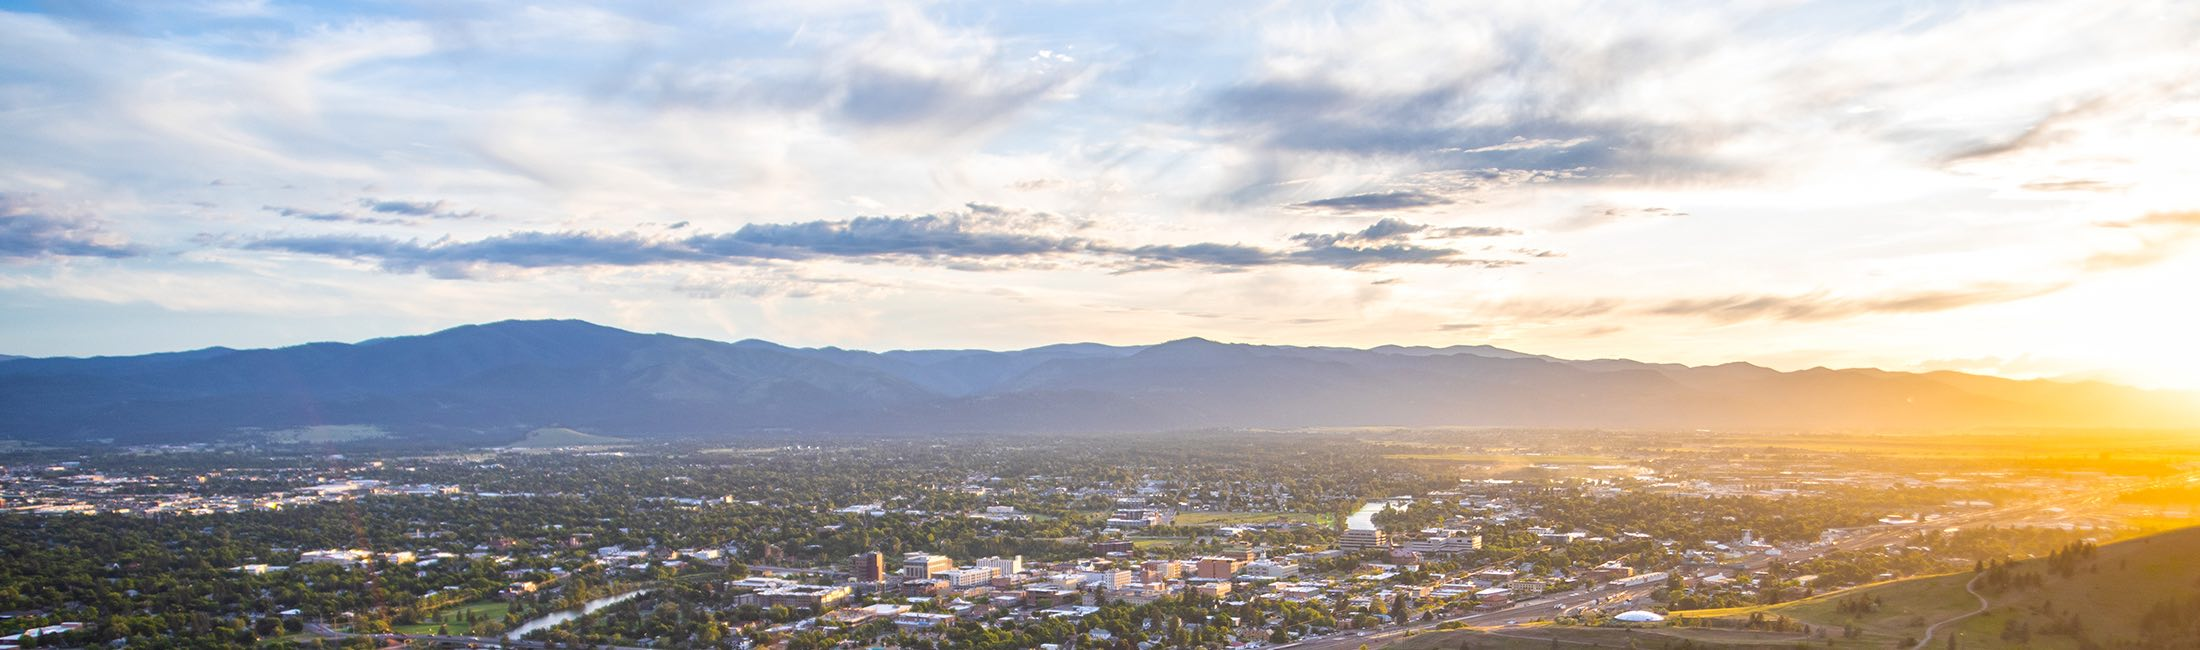 Responsible Ways You Can Still Enjoy Missoula While Social Distancing